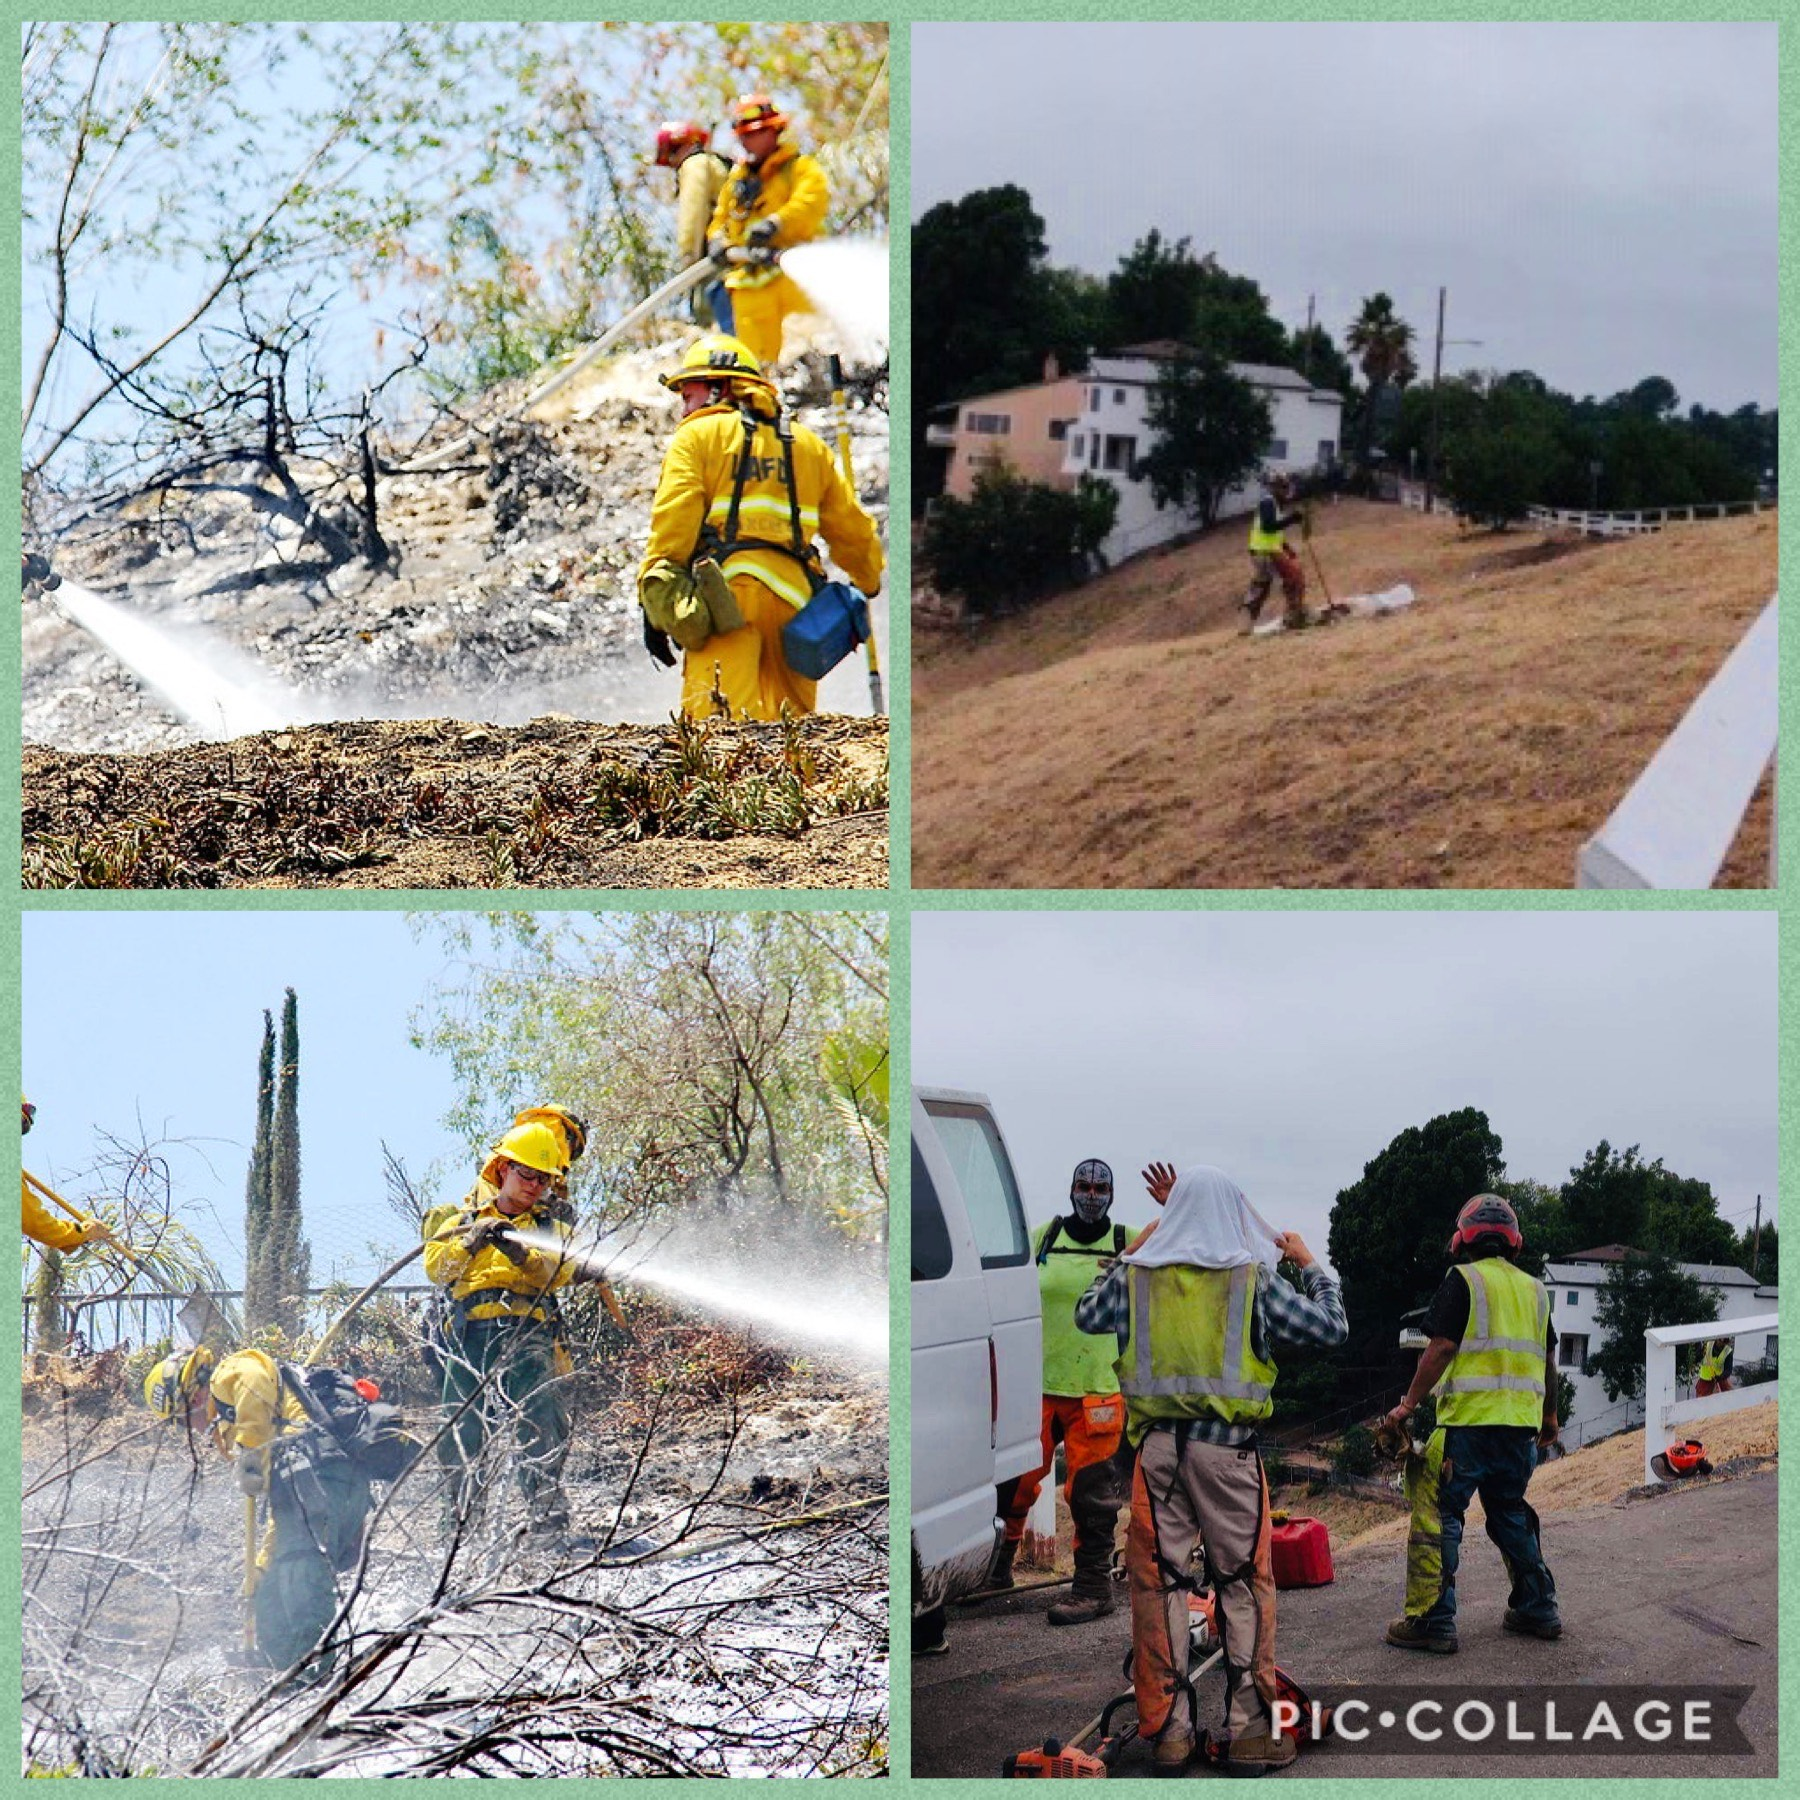 LACC clearing brush on Kite Hill in Mt Washington 7-1-2020 & Sun Valley Fire 7-1-2016 COLLAGE